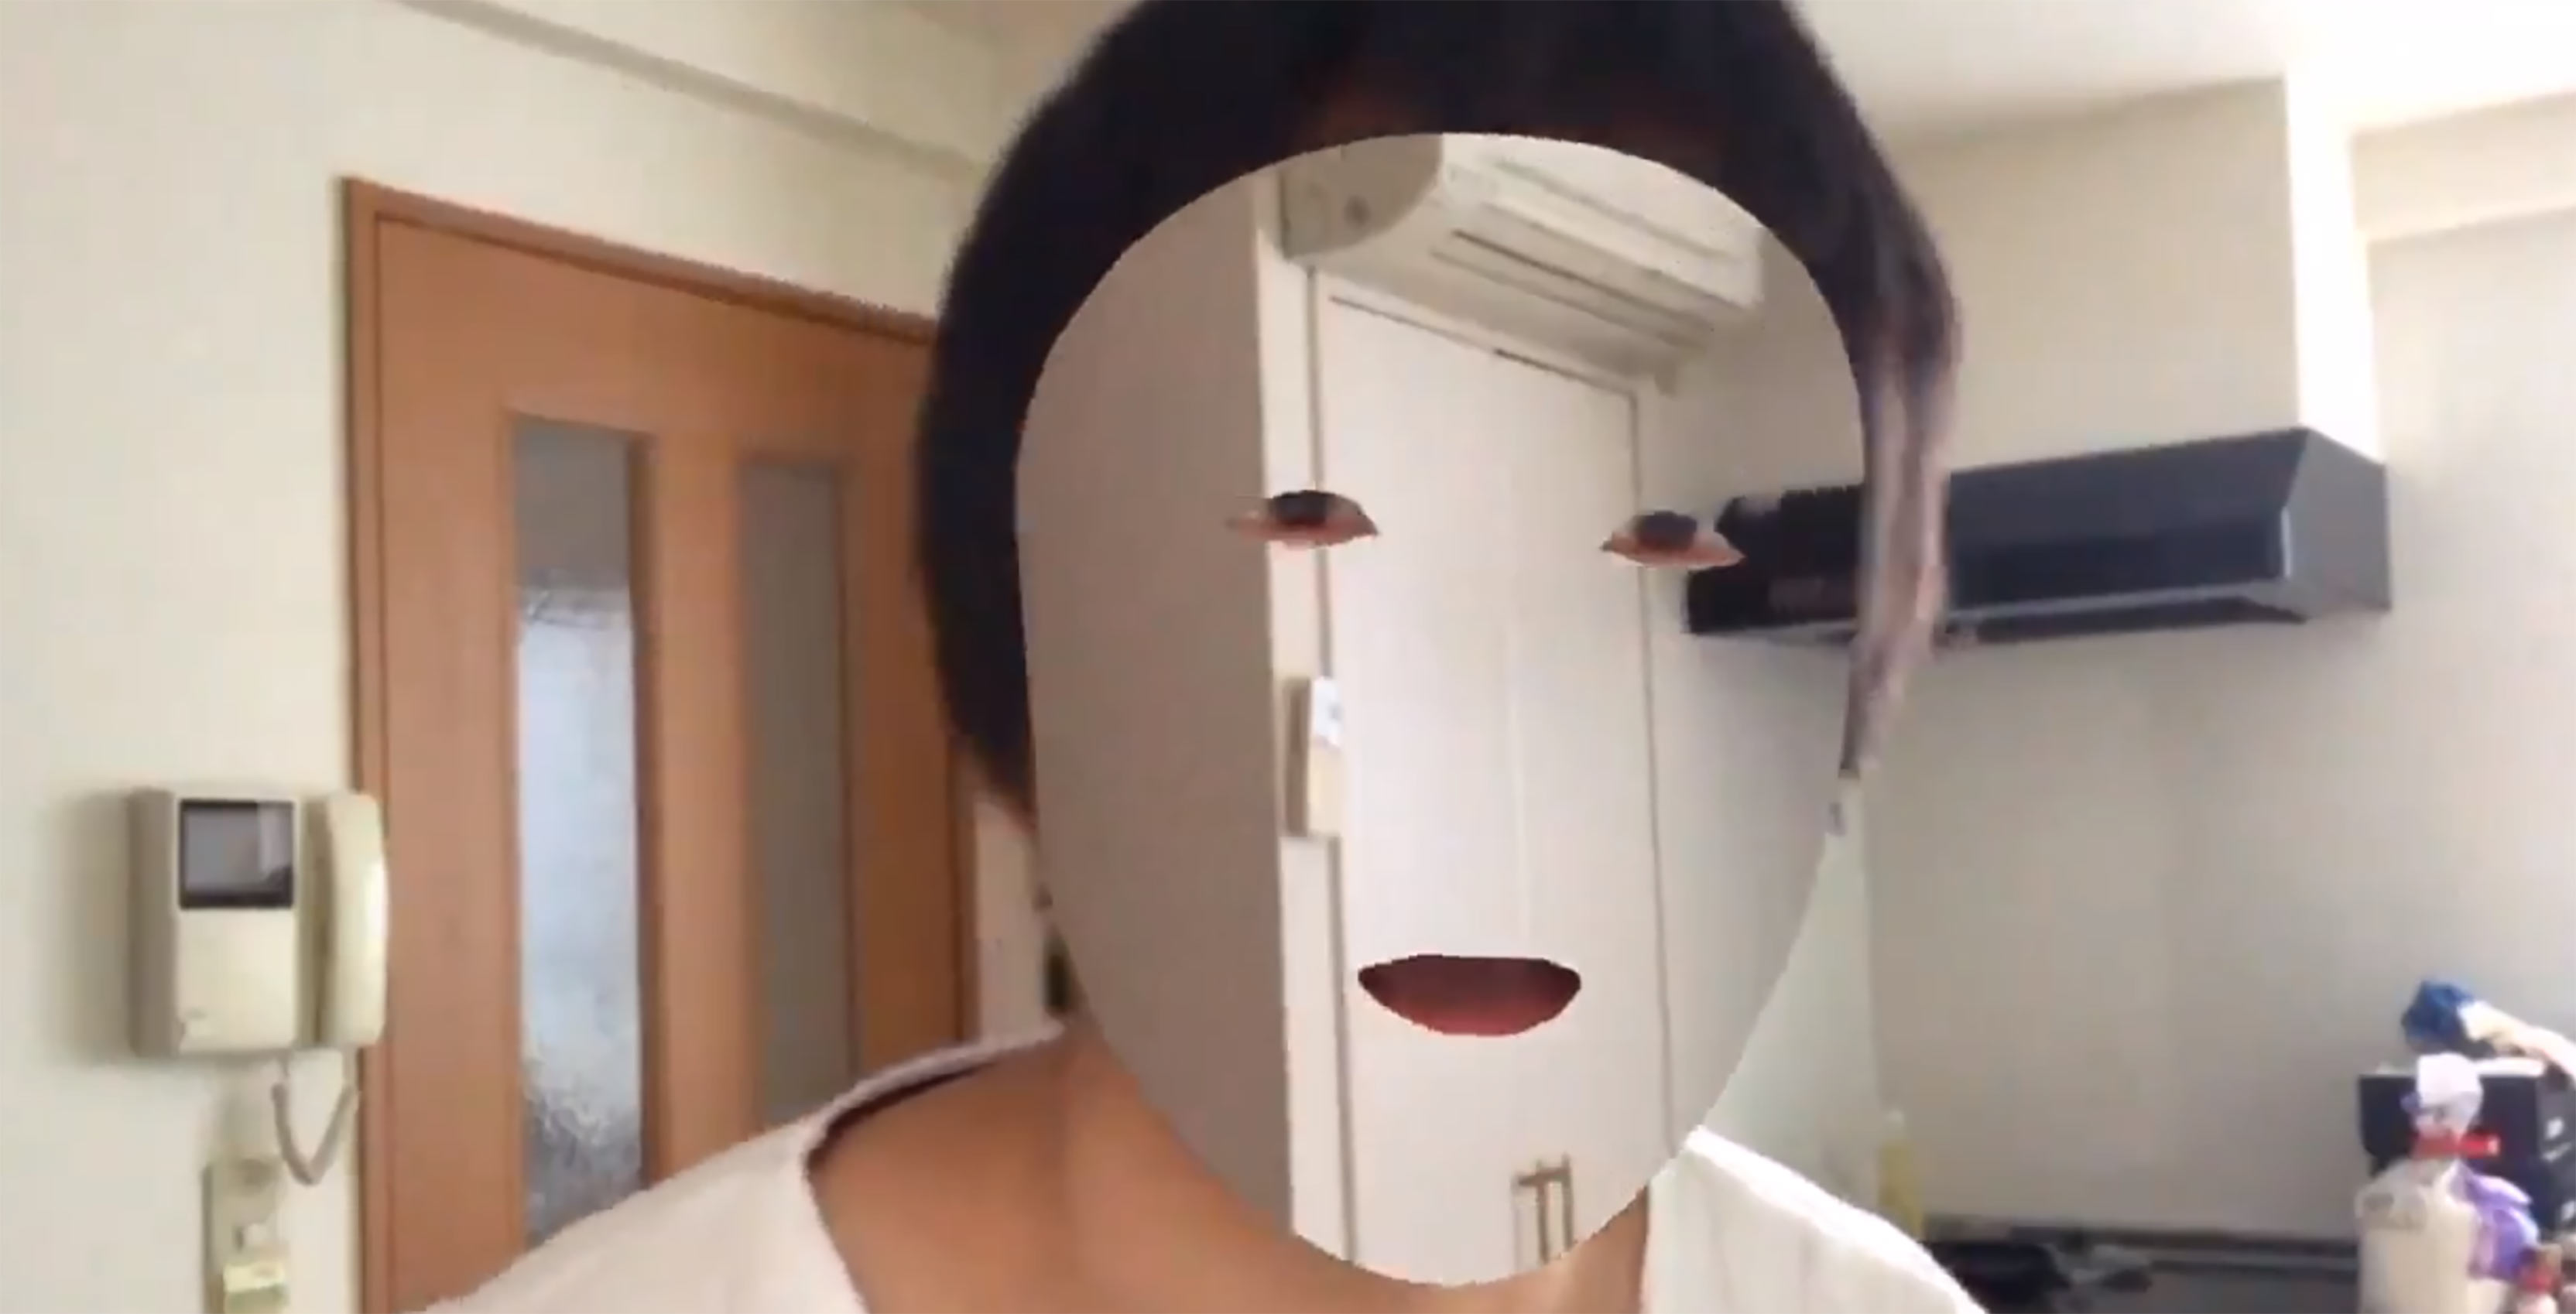 App that hides faces developed by Kazuya Noshiro